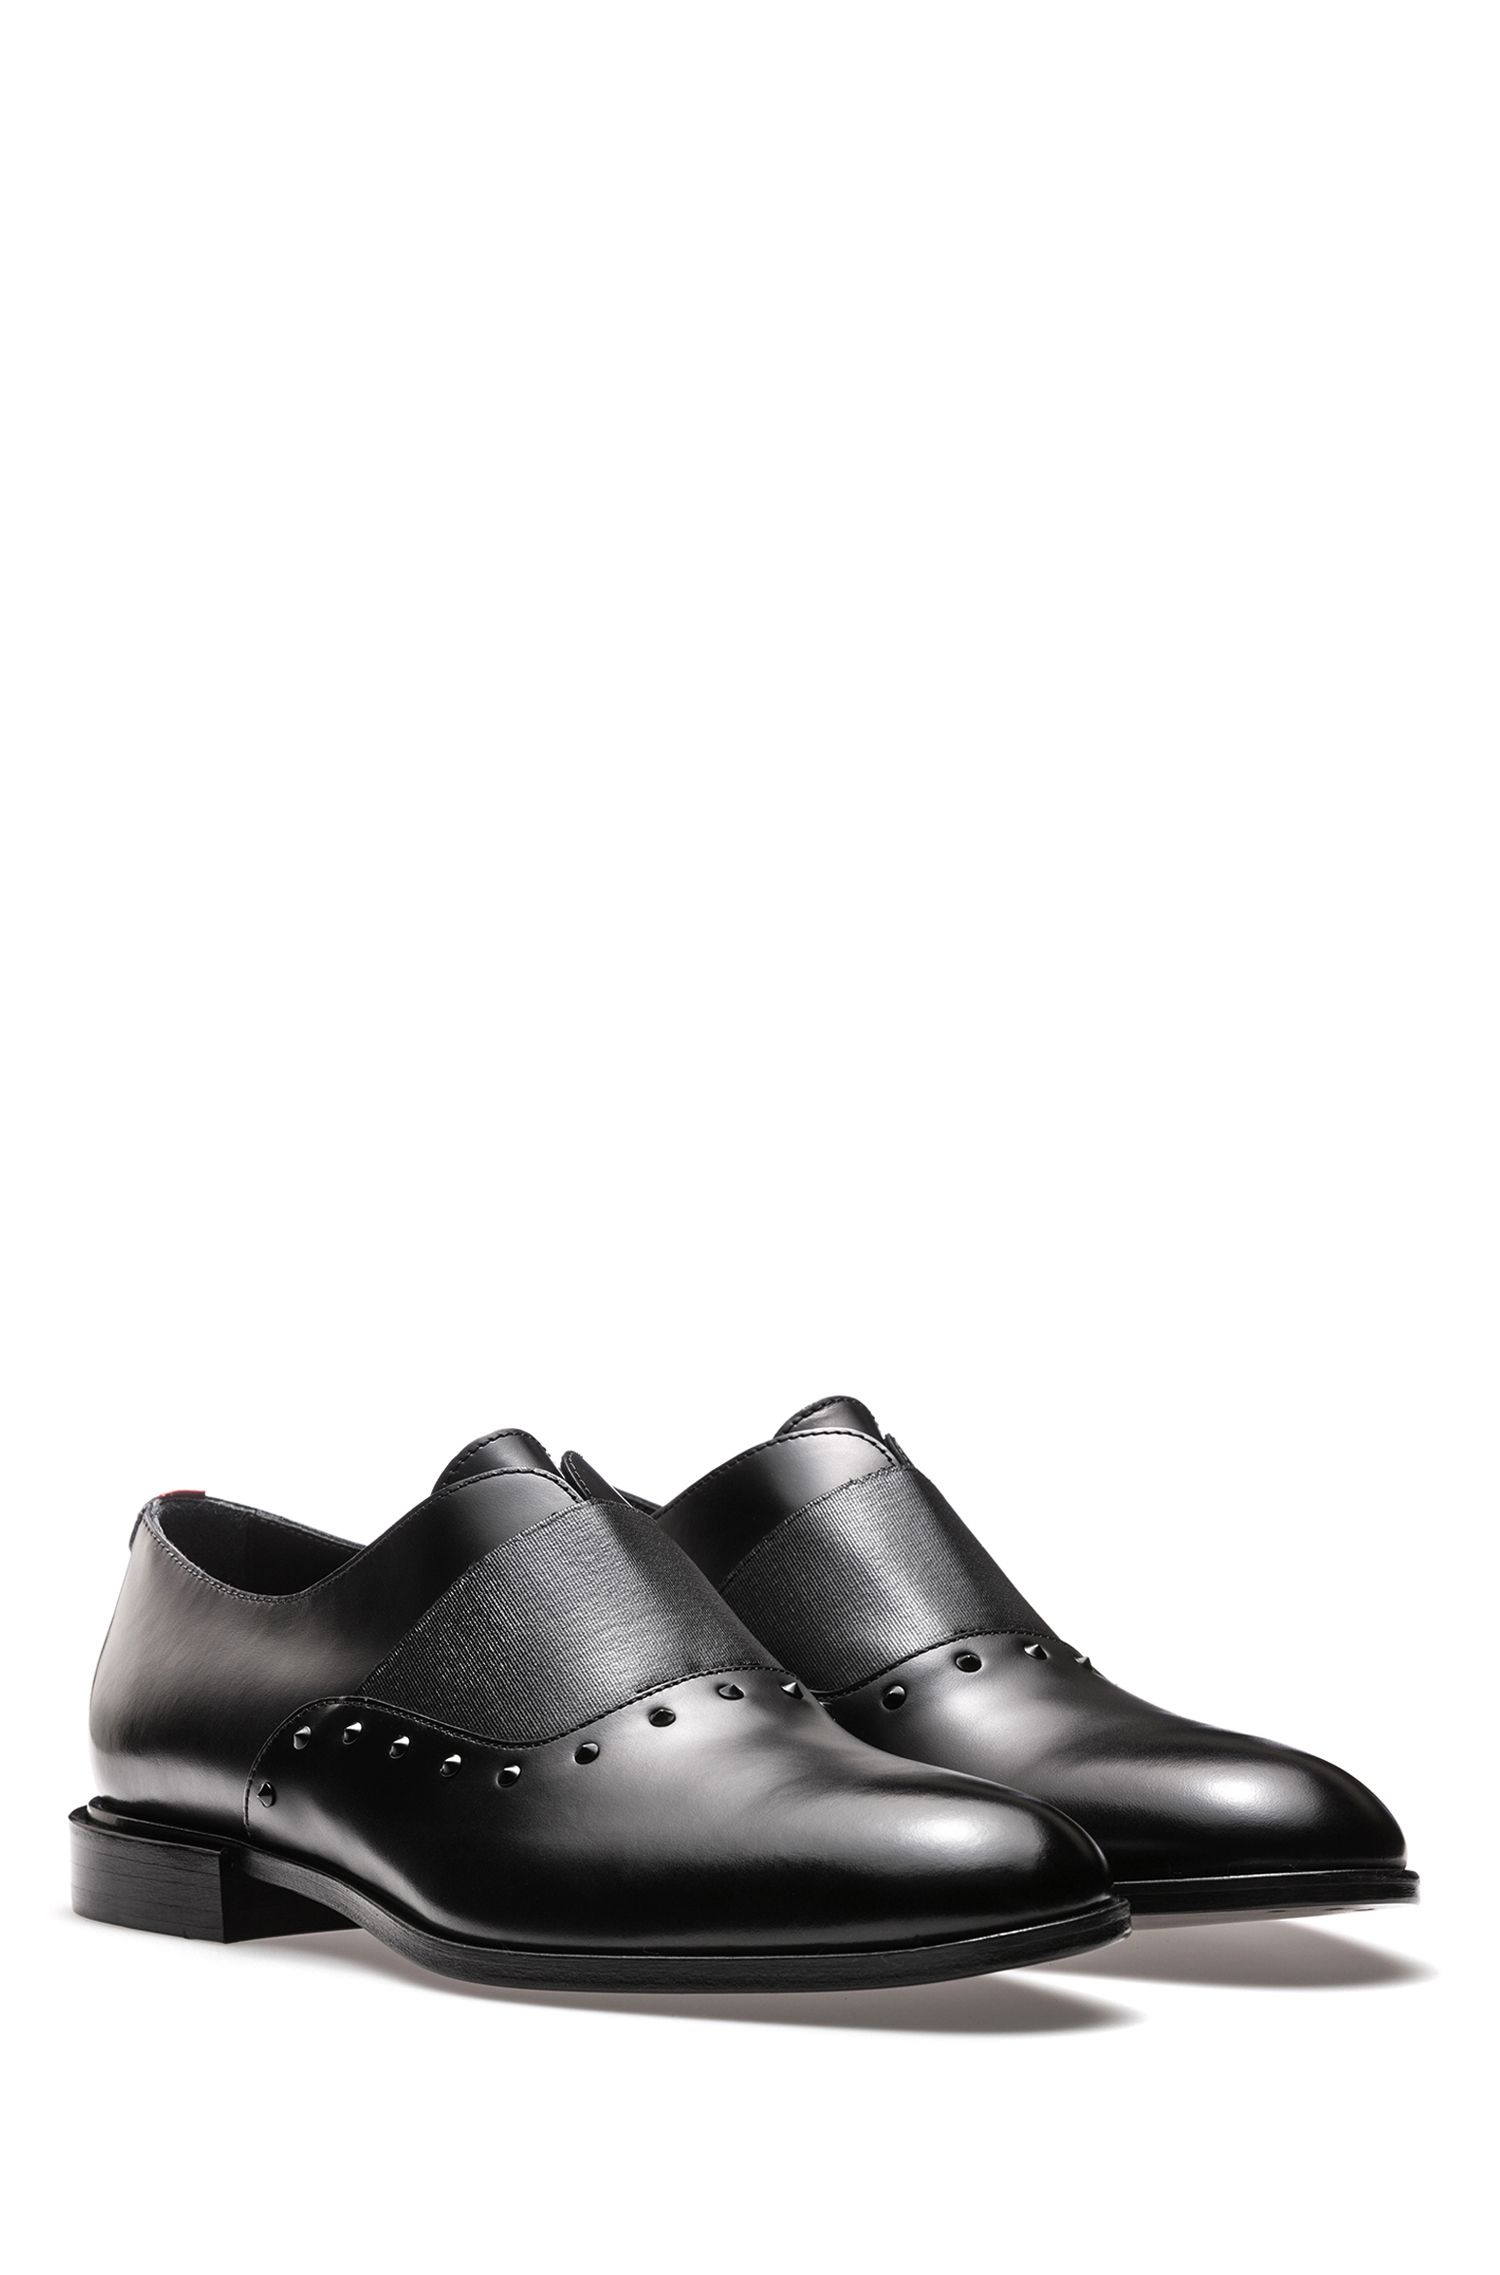 Slip-on leather dress shoes with stud detailing HUGO BOSS